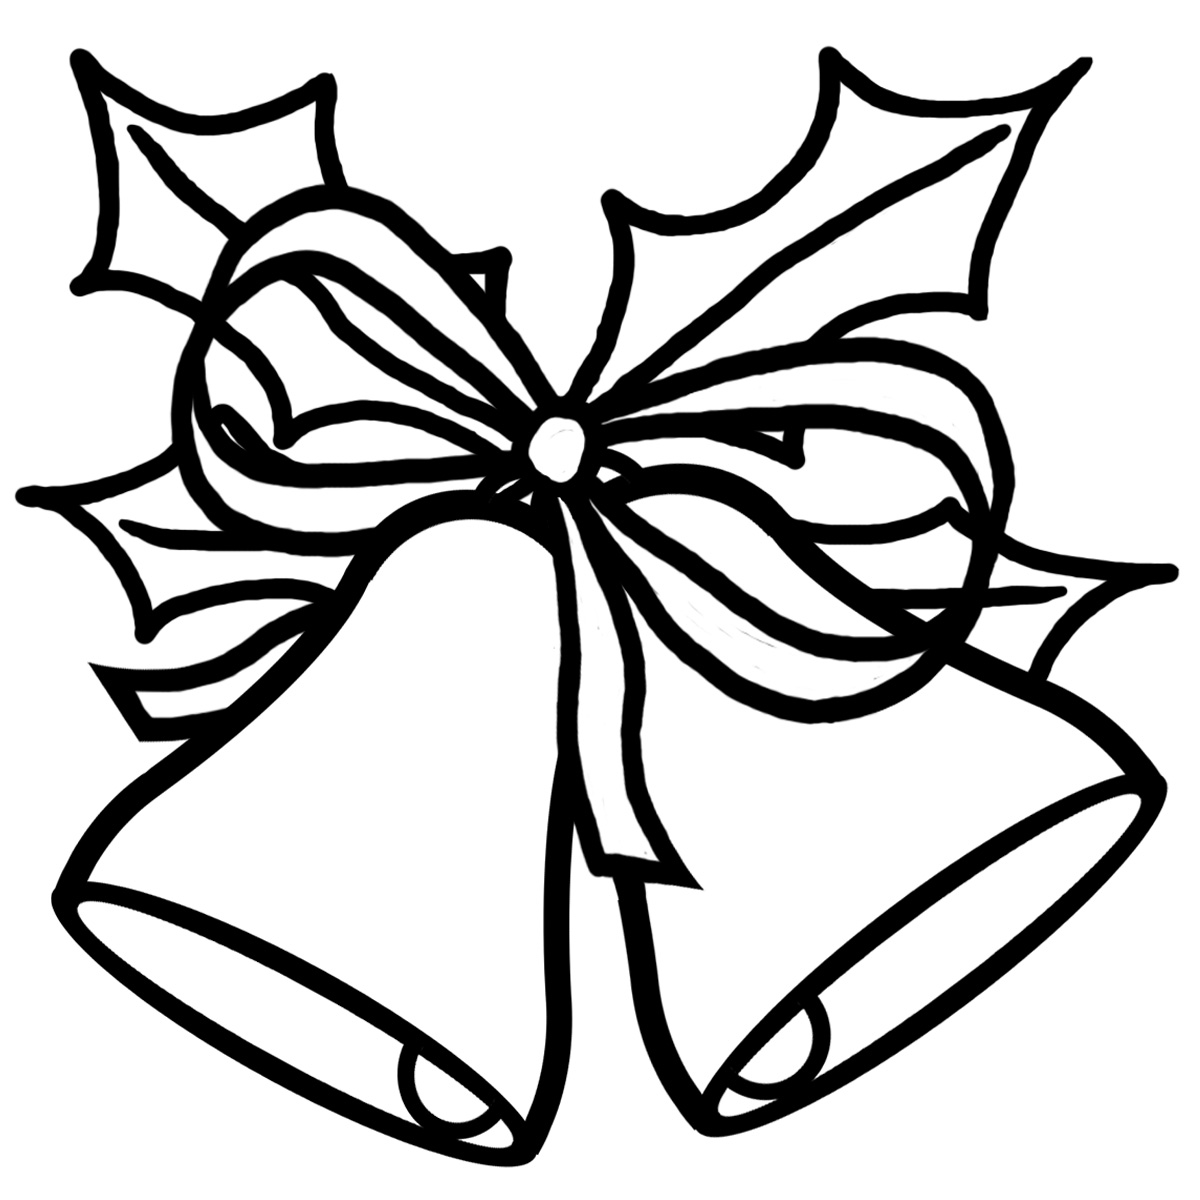 1200x1200 Black And White Christmas Clip Art